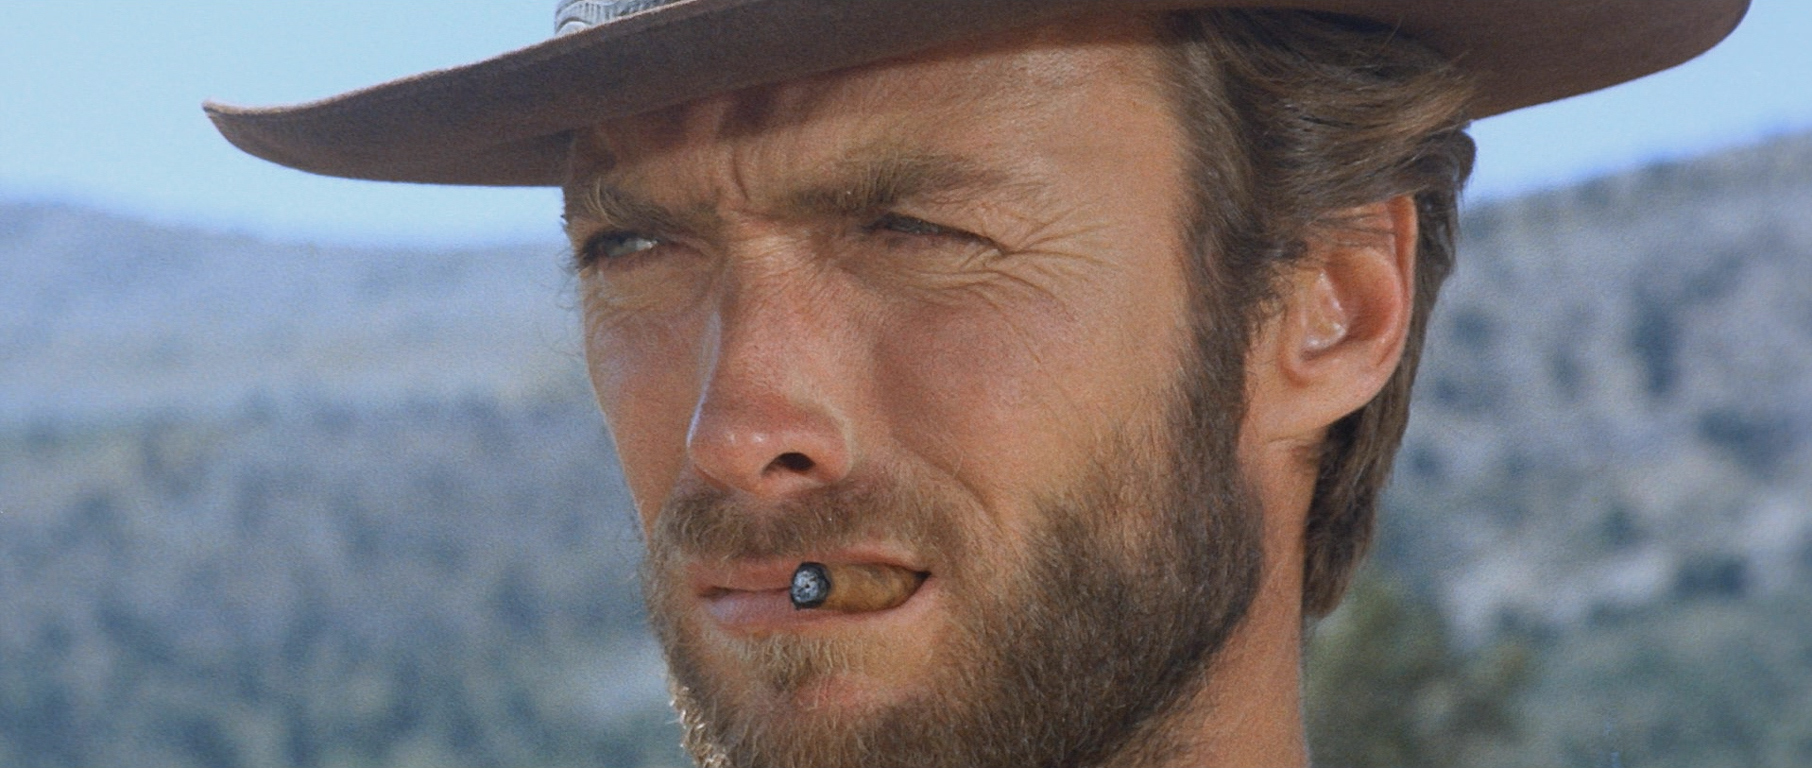 clint eastwood film HD Wallpaper